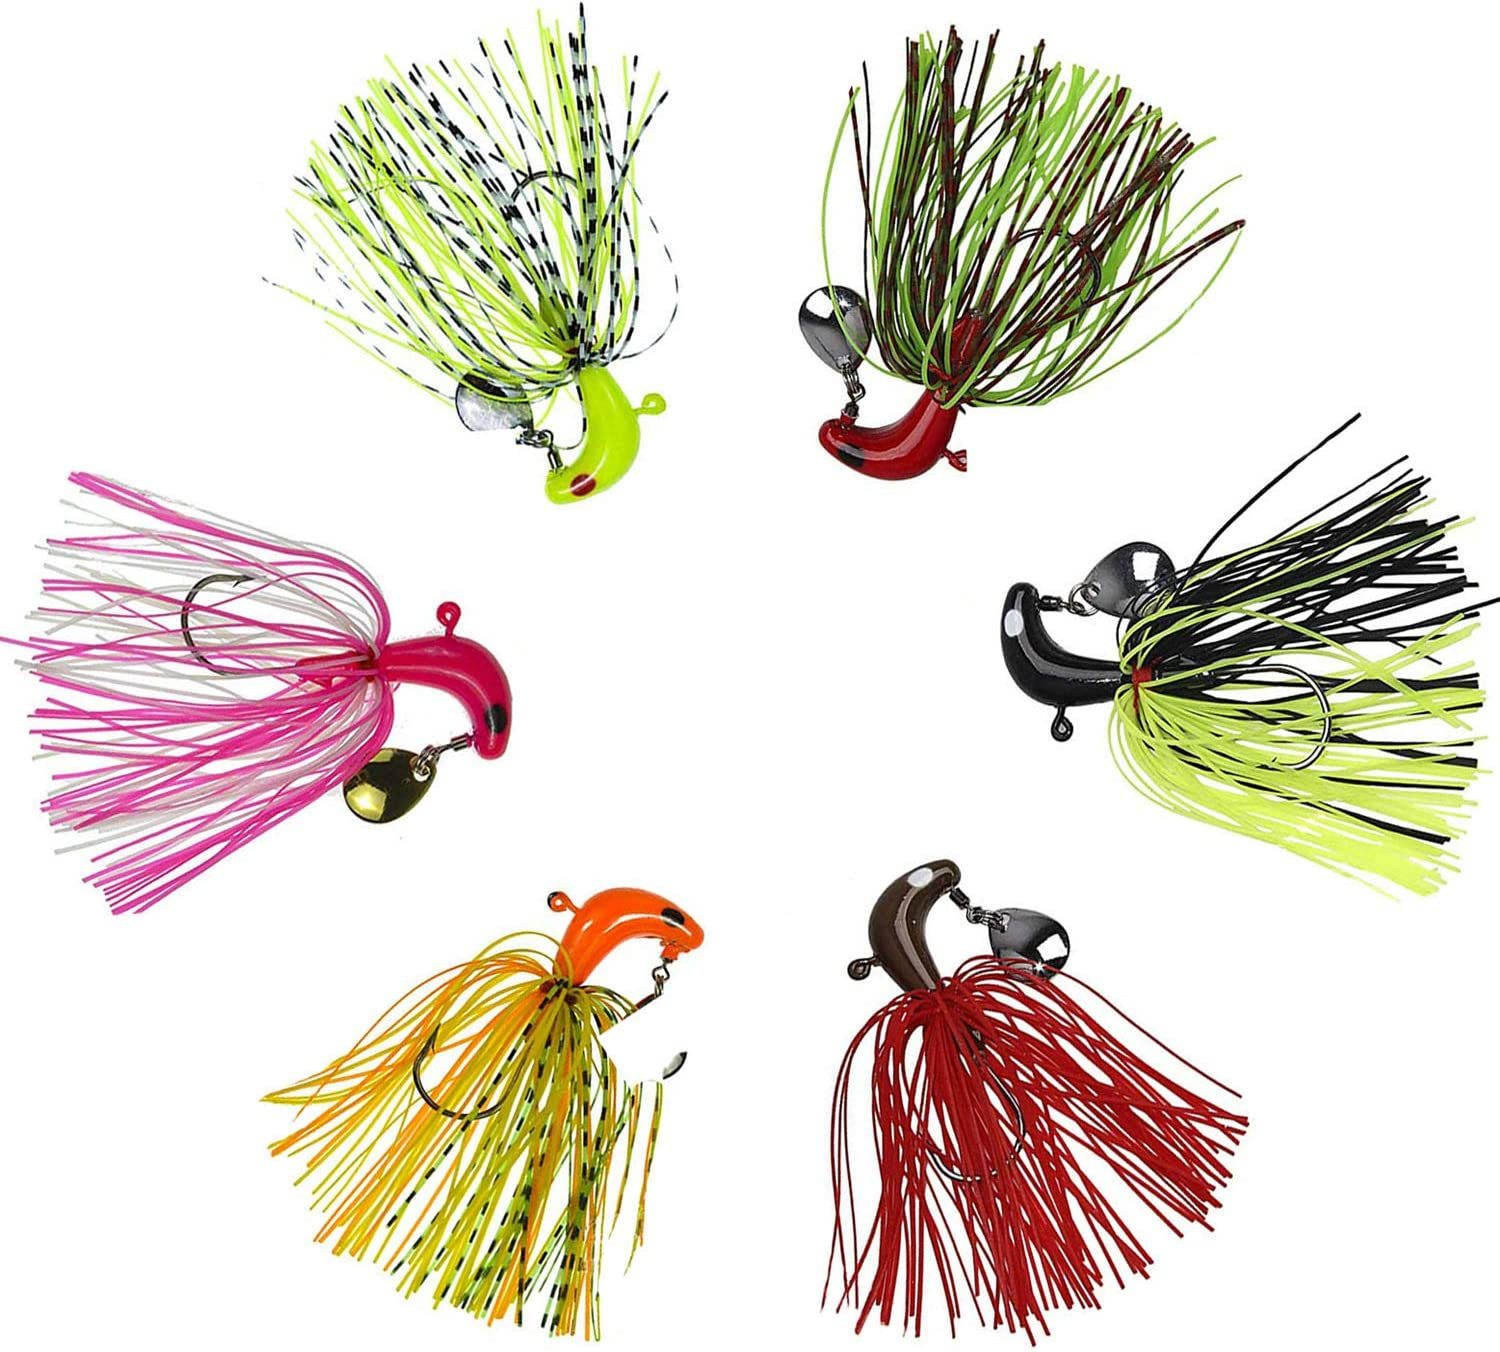 OROOTL Hard Metal Spinnerbait Fishing Lures, 6pcs Ice Fishing Jigs and Rigs Set, Lead Head Bass Skirts Swim Baits for Freshwater and Saltwater